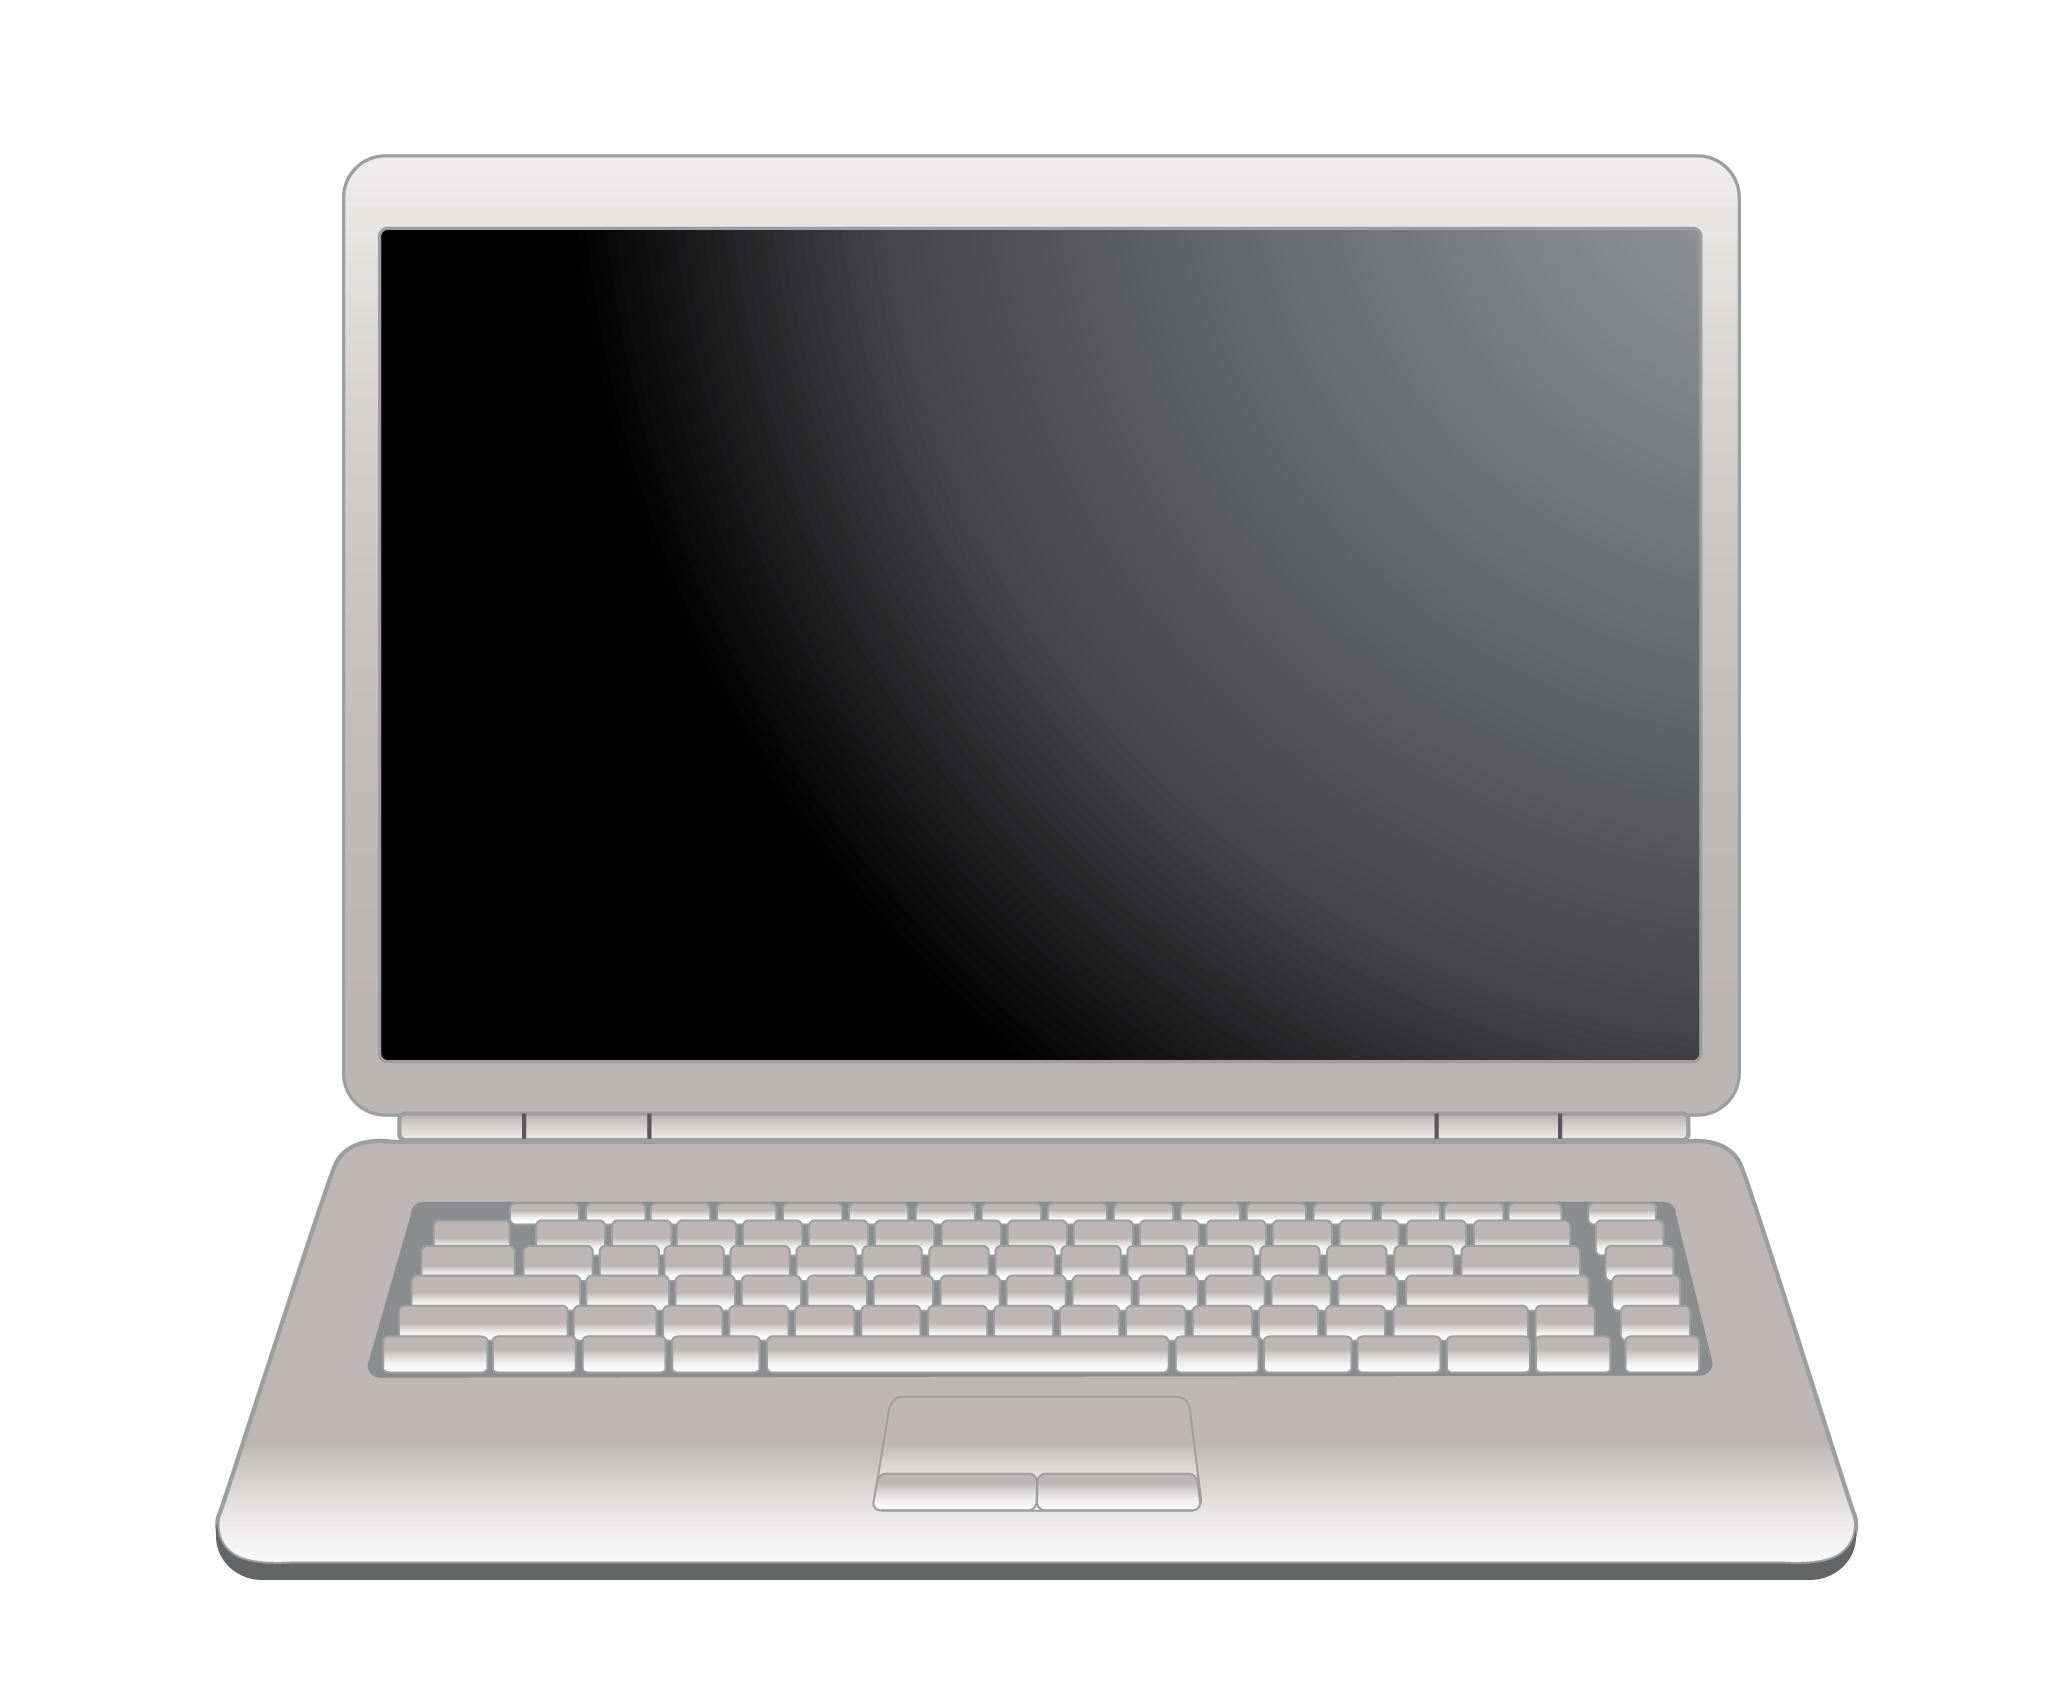 Laptop clipart png format. Transparent images all free